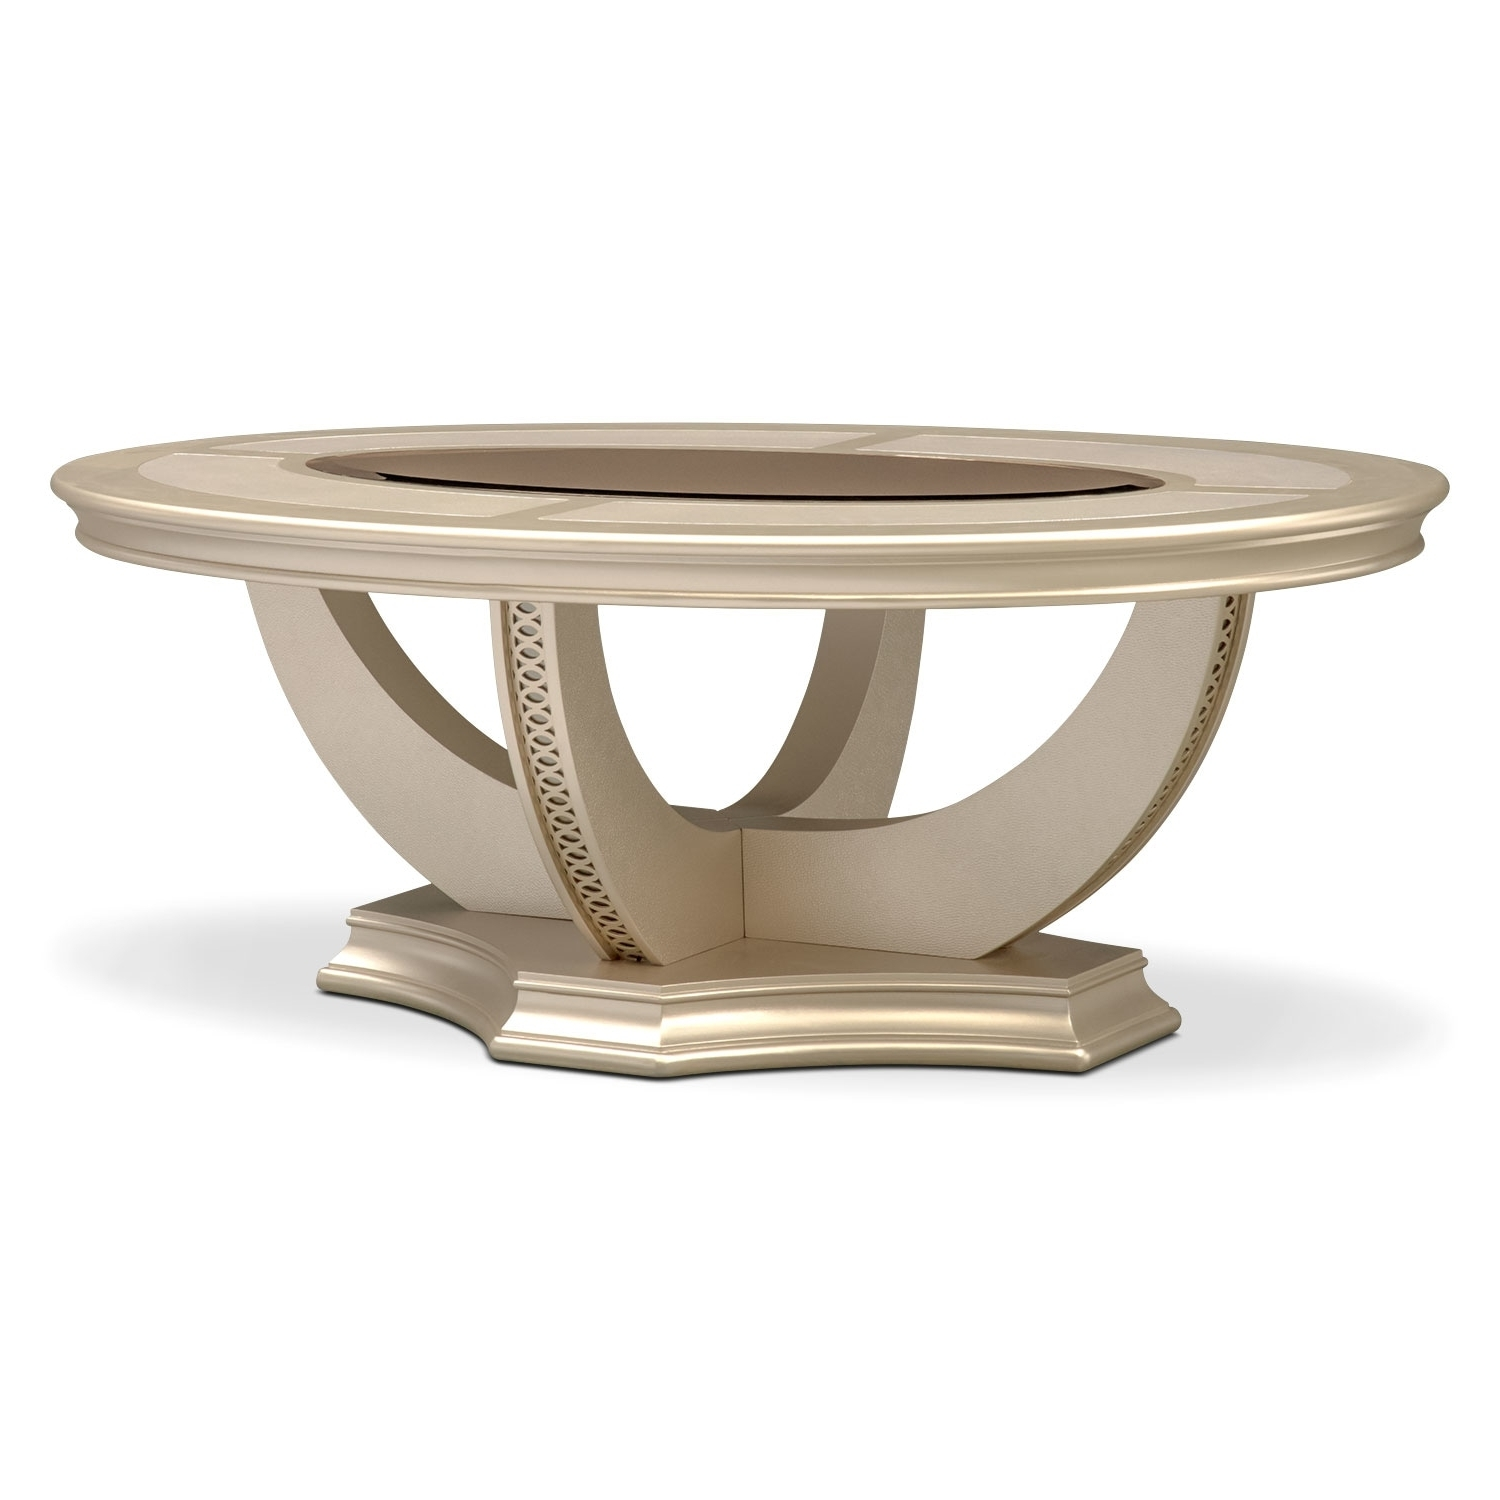 Most Recent Combs Cocktail Tables Within Coffee Tables (View 10 of 20)